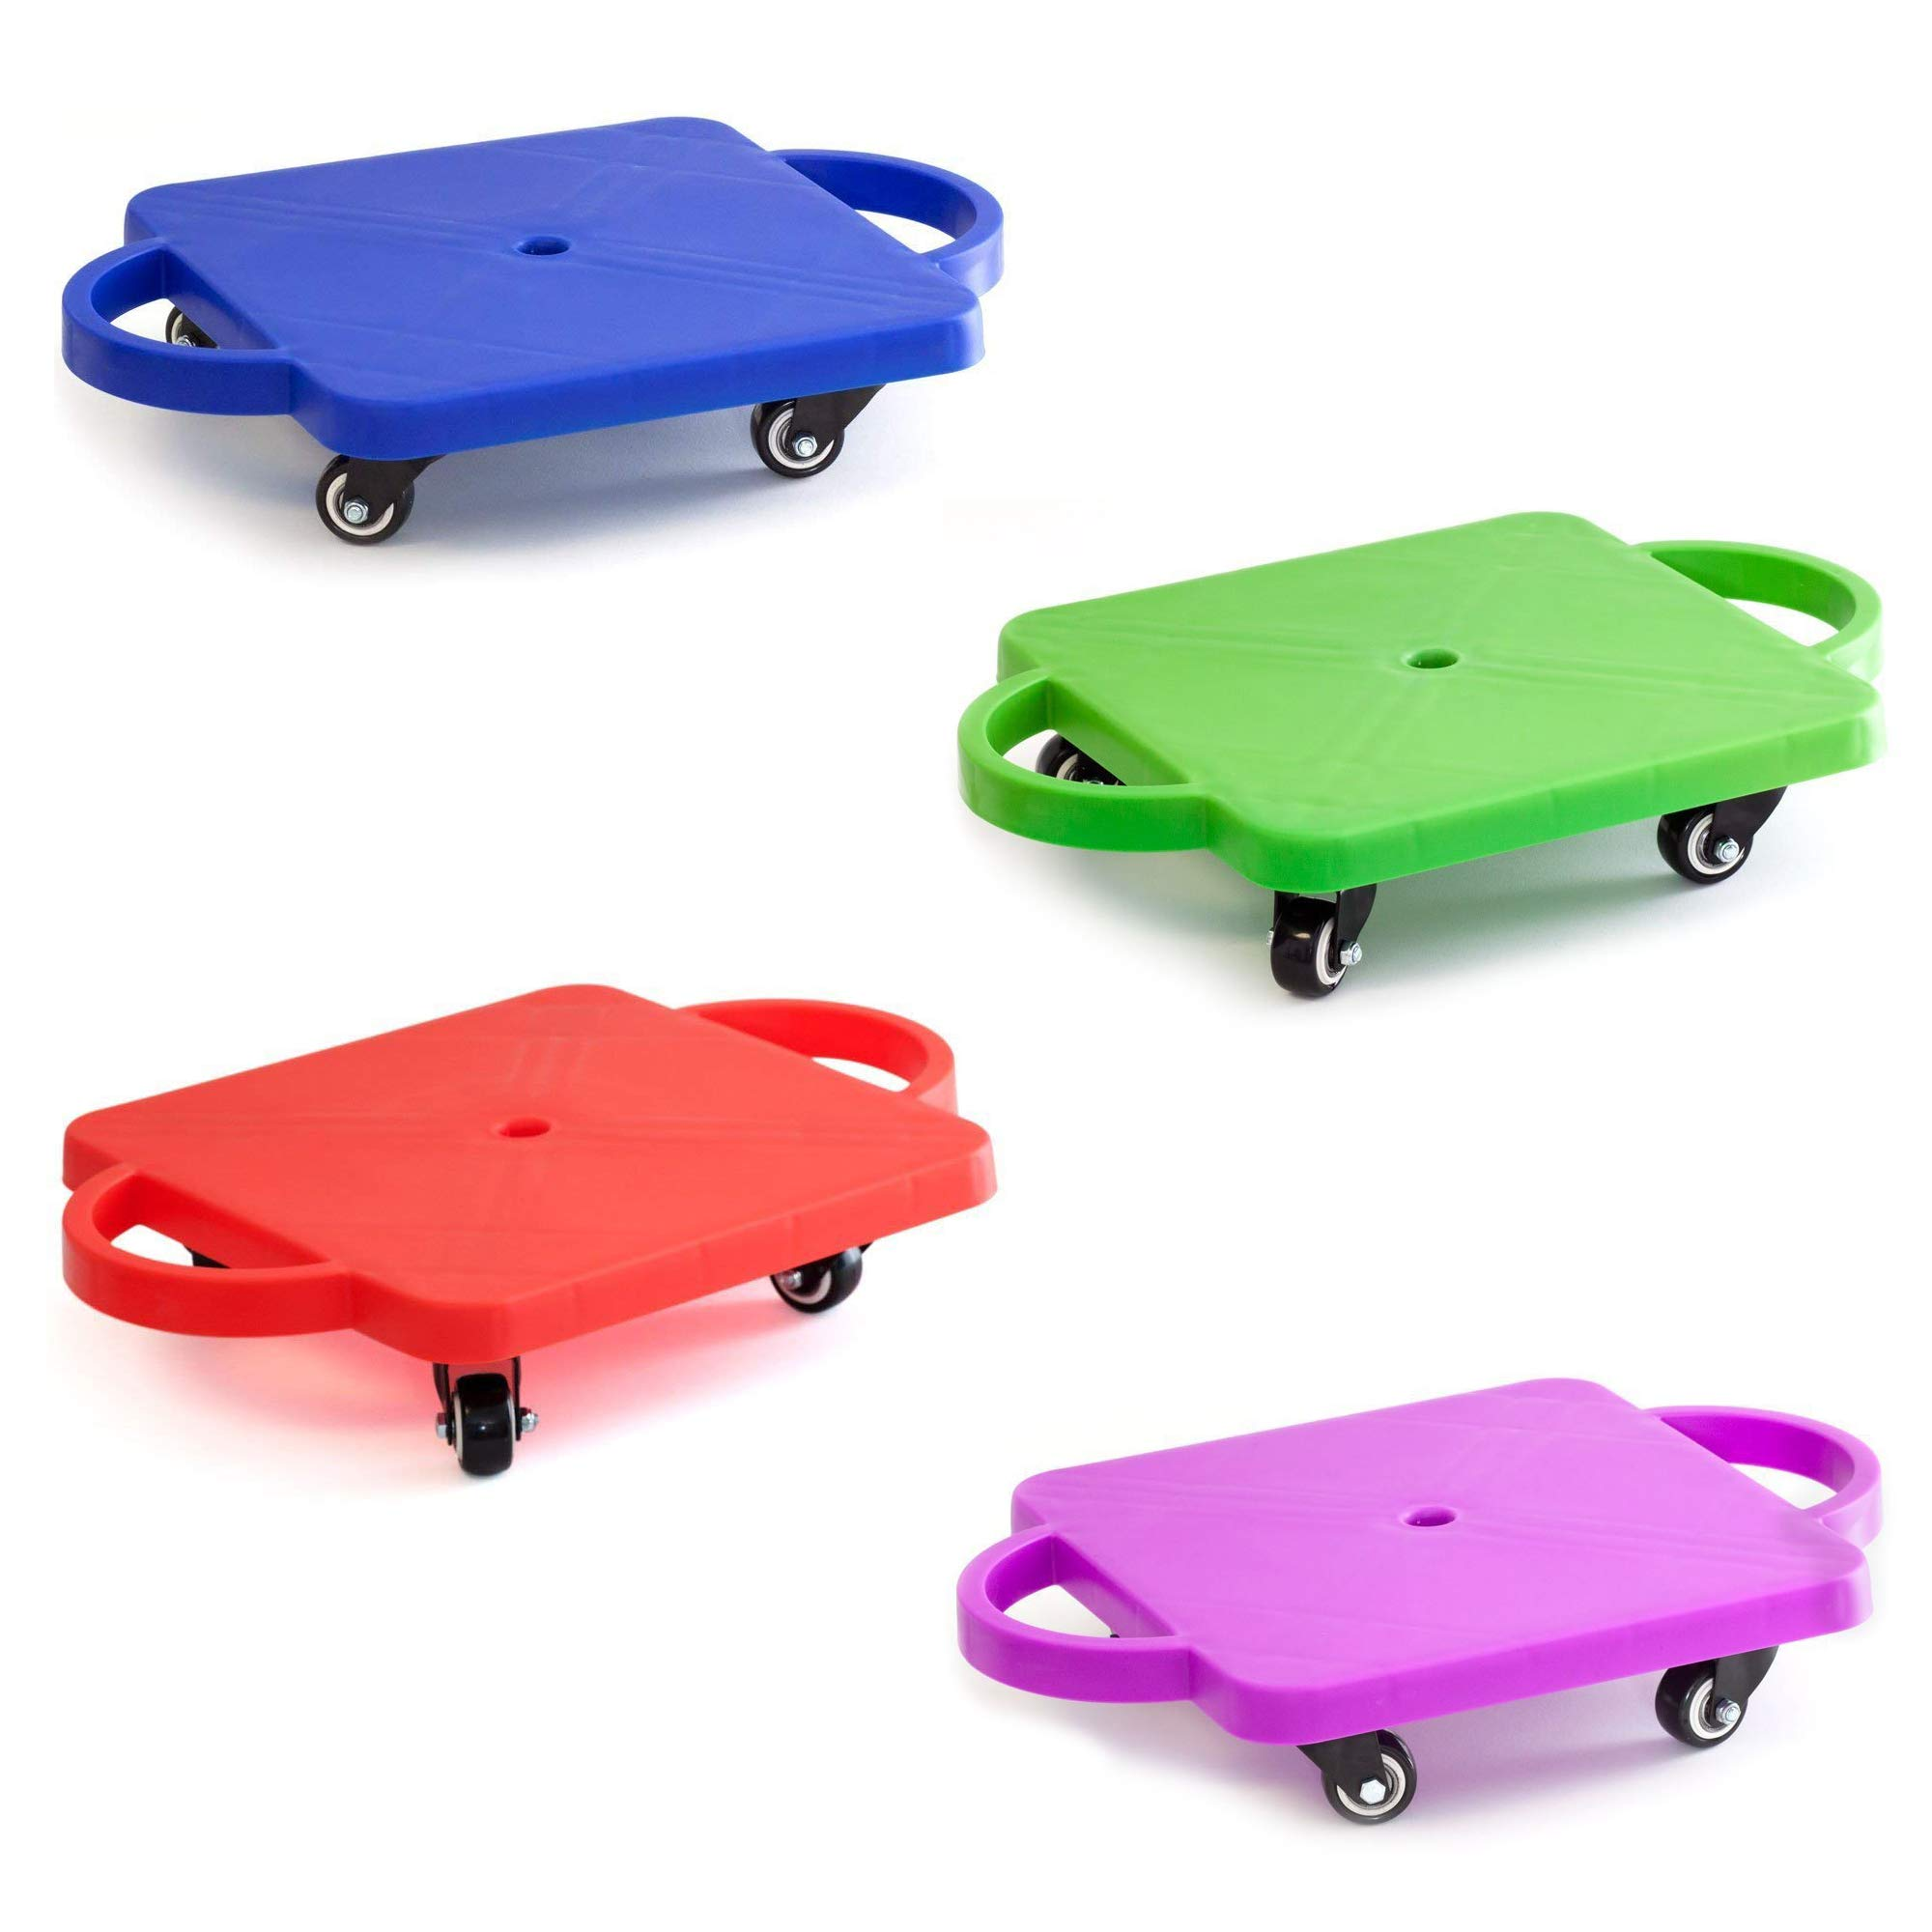 GSE Games & Sports Expert Gym Plastic Scooter Board with Handles (6 Colors Available) (4-Pack) by GSE Games & Sports Expert